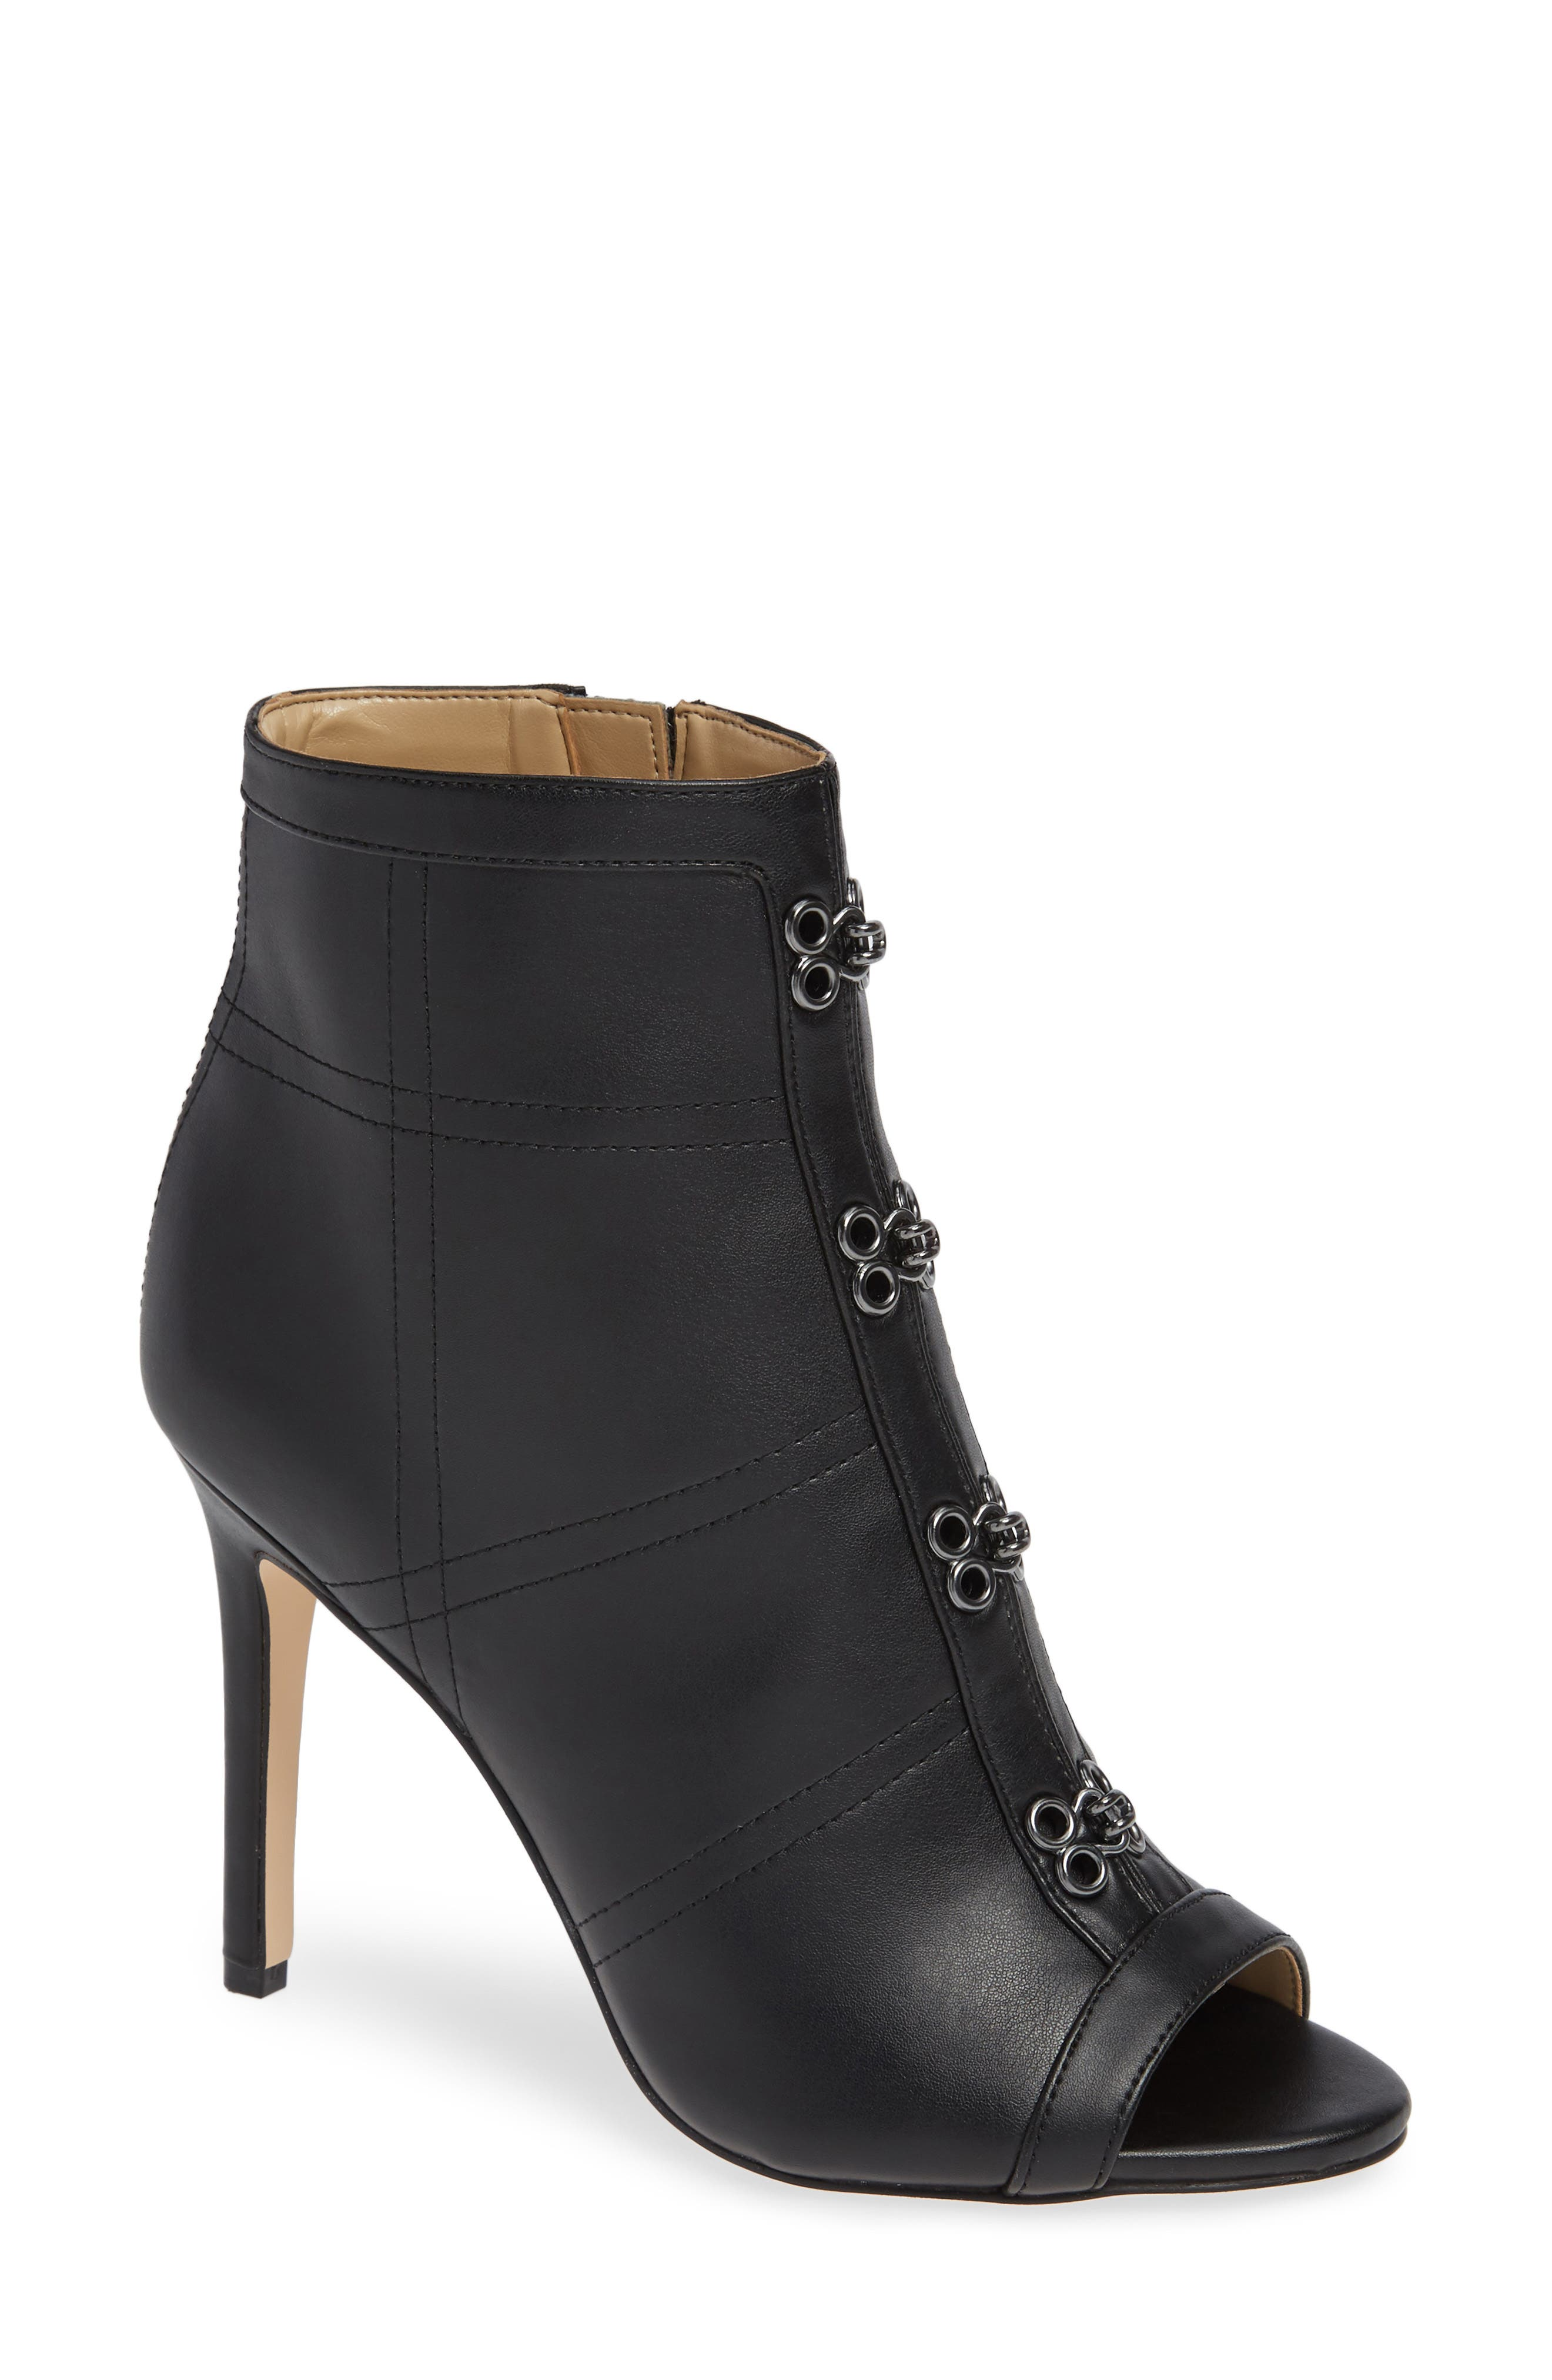 KATY PERRY,                             Open Toe Bootie,                             Main thumbnail 1, color,                             BLACK